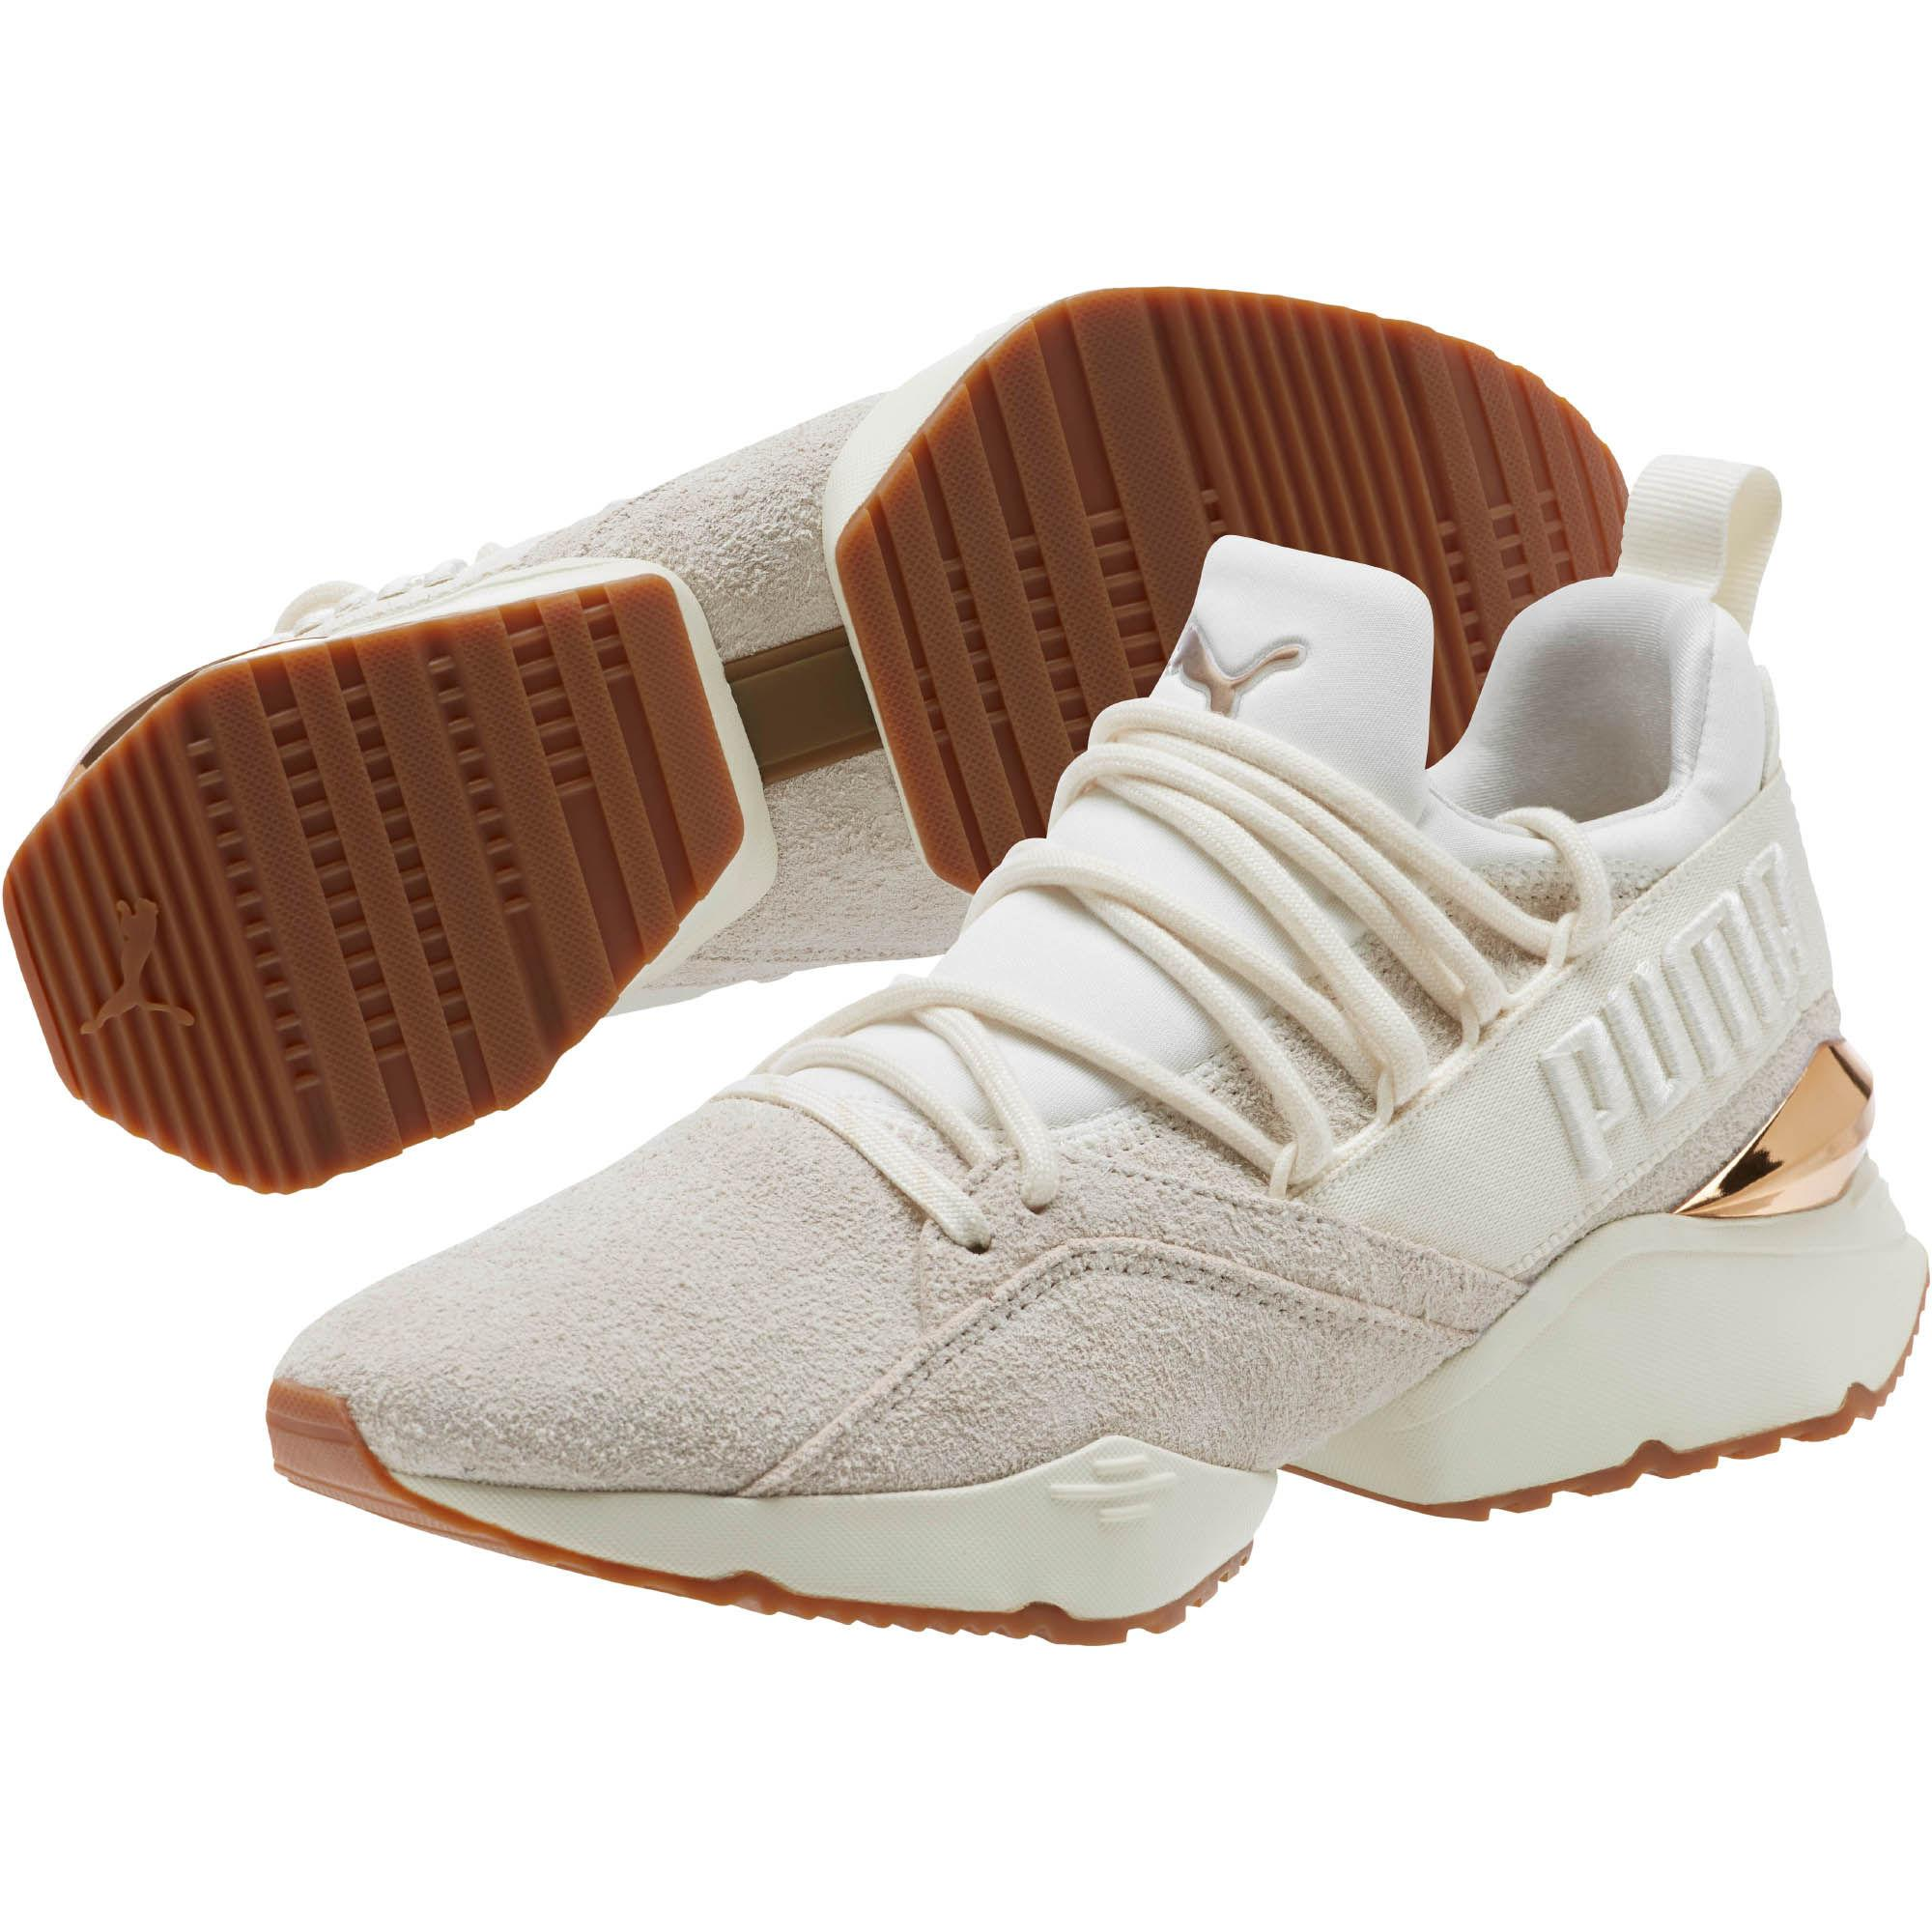 Lyst - PUMA Muse Maia Util Women s Sneakers 20c330008a